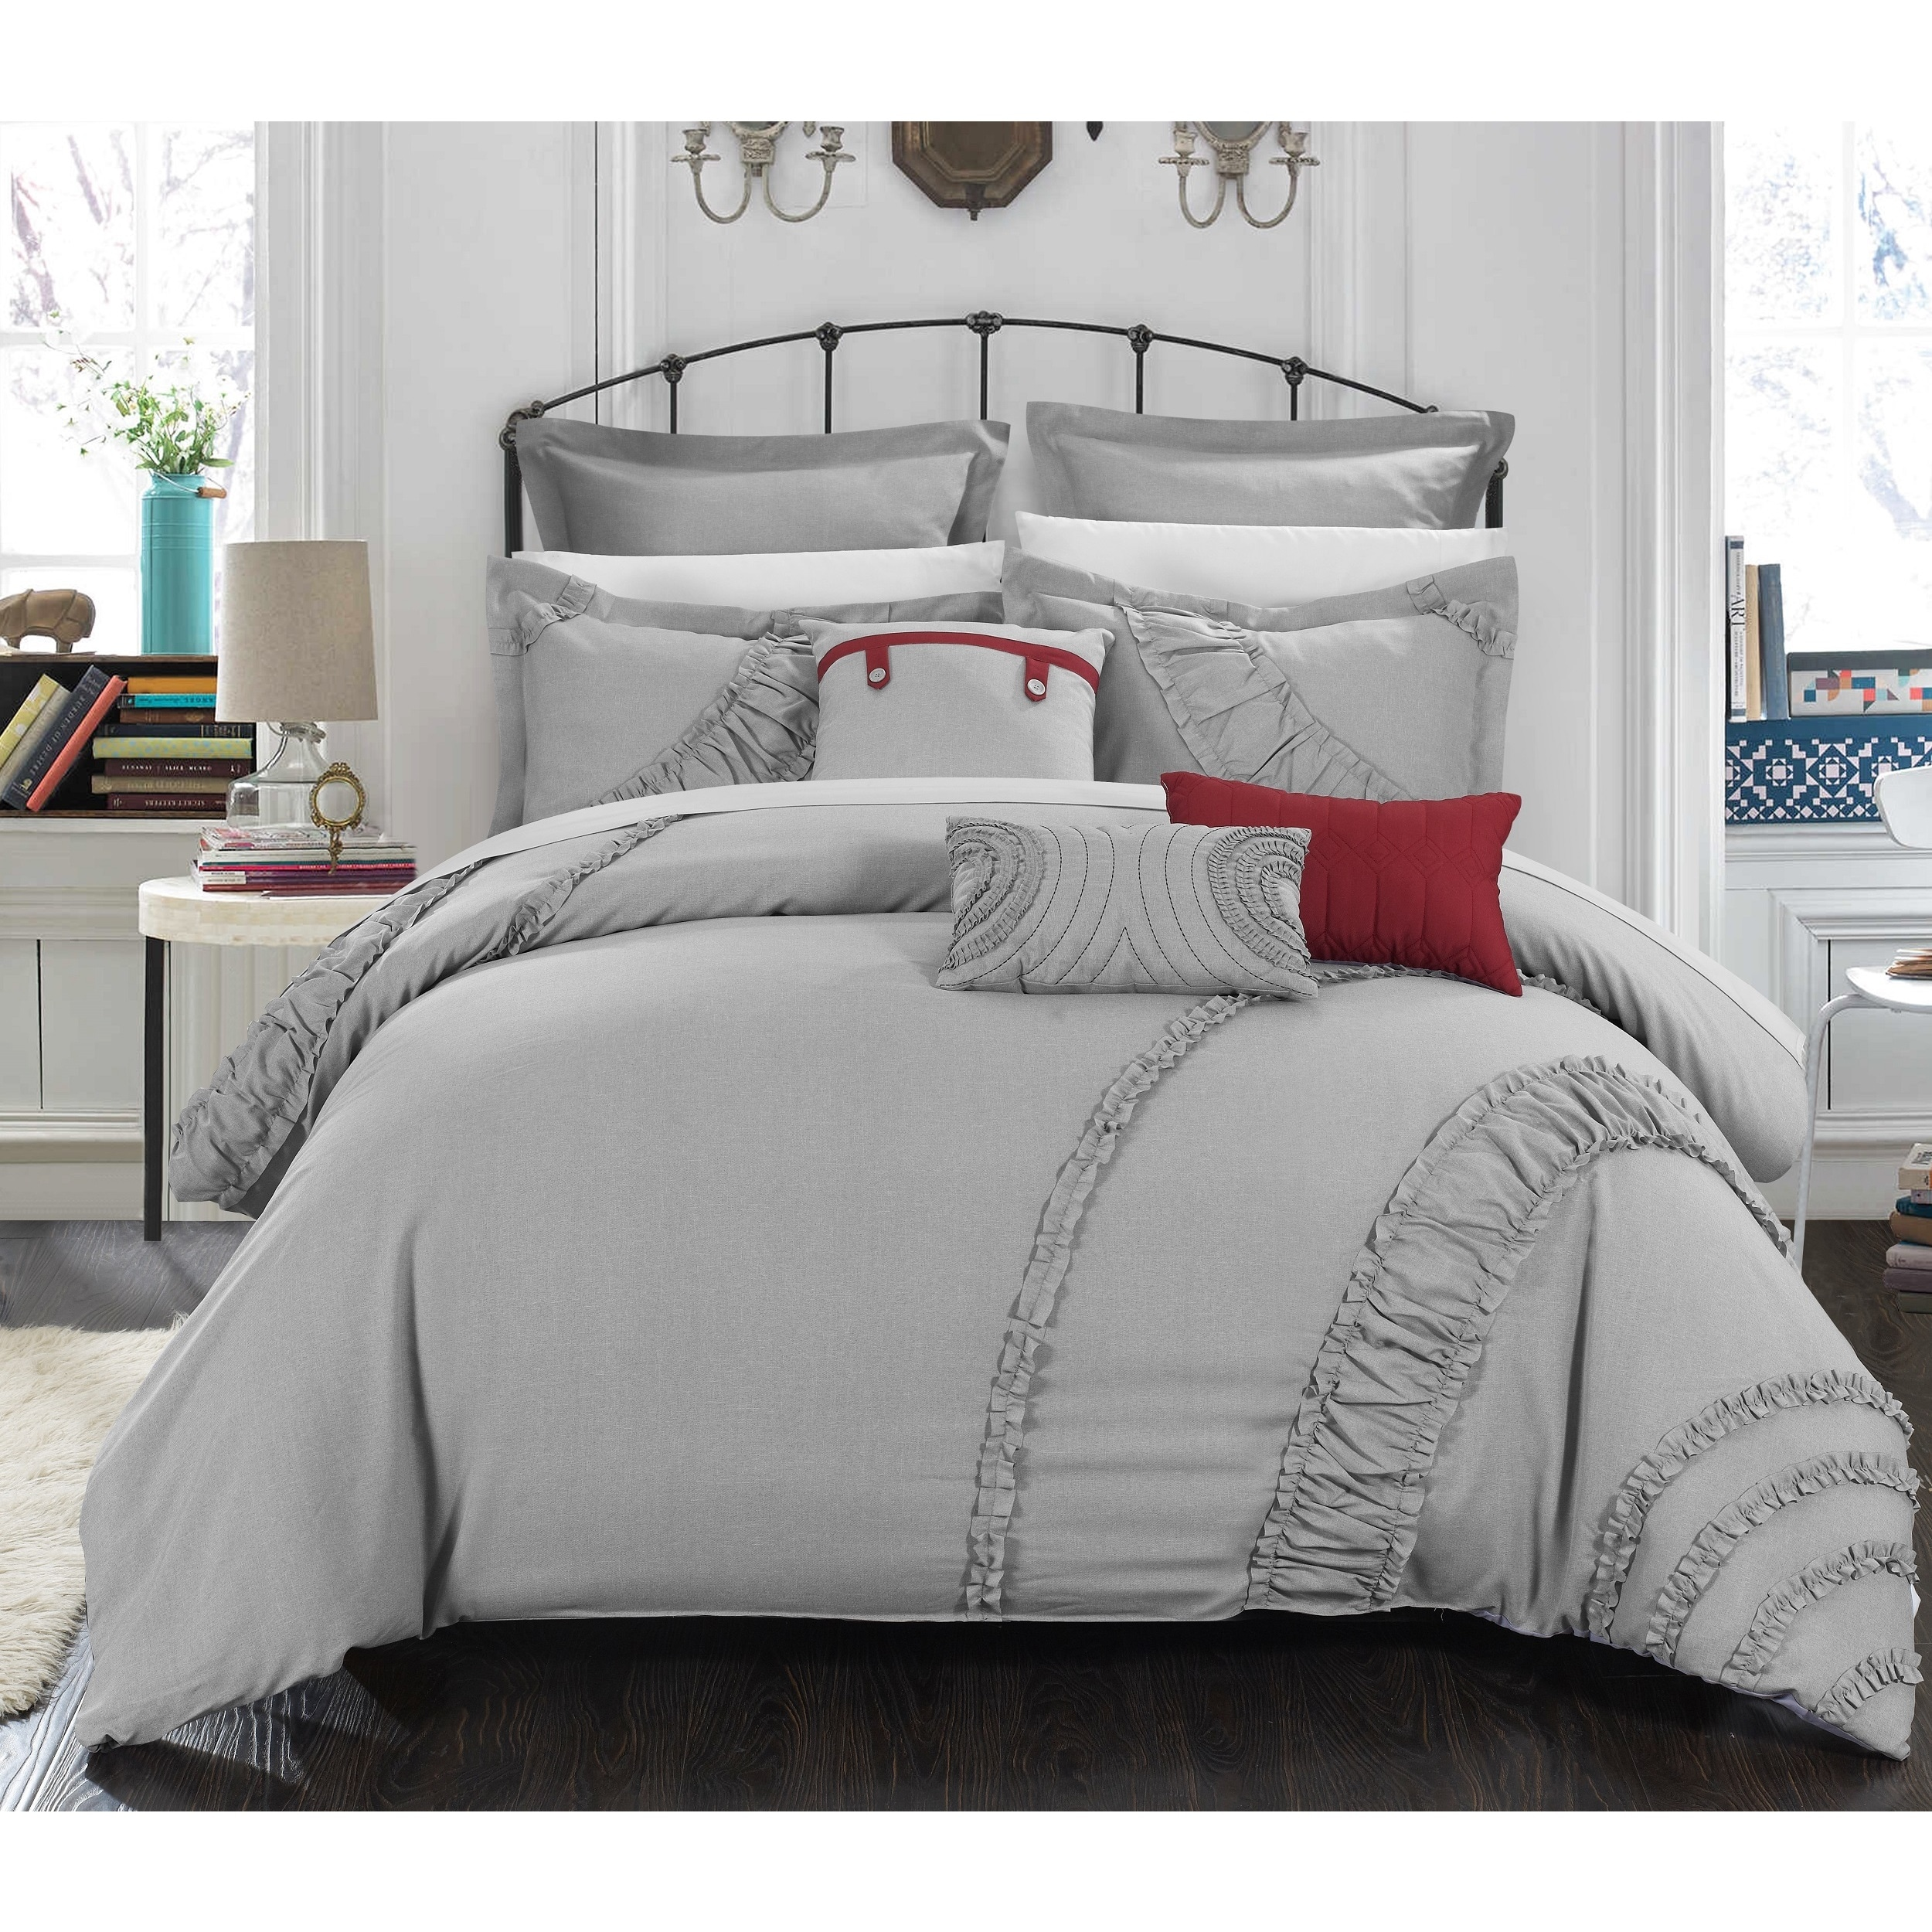 to colonial pleating textiles home comforter oversized linen pin marilyn elegant set the embellishes add